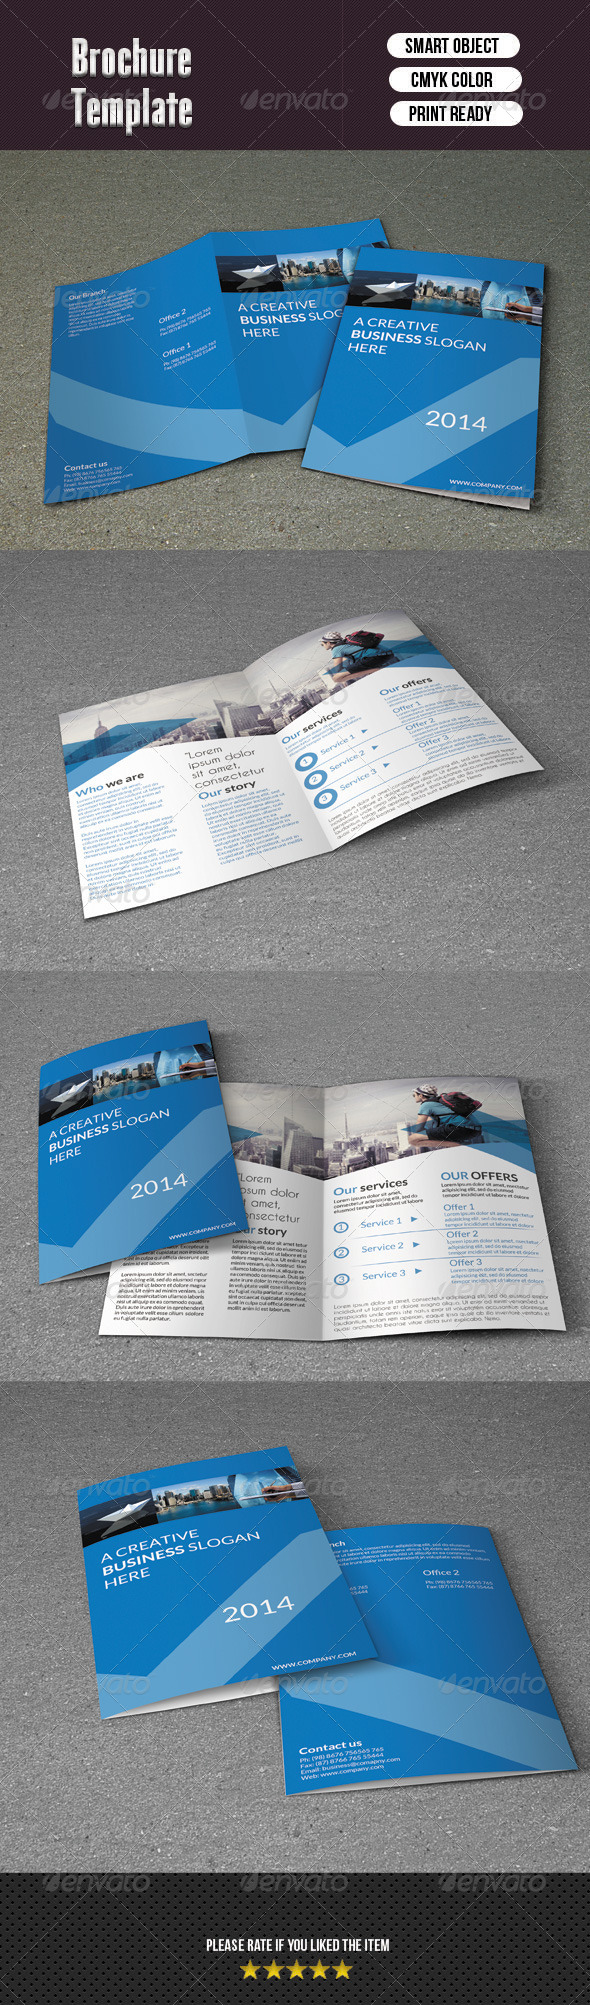 Corporate Bifold Template